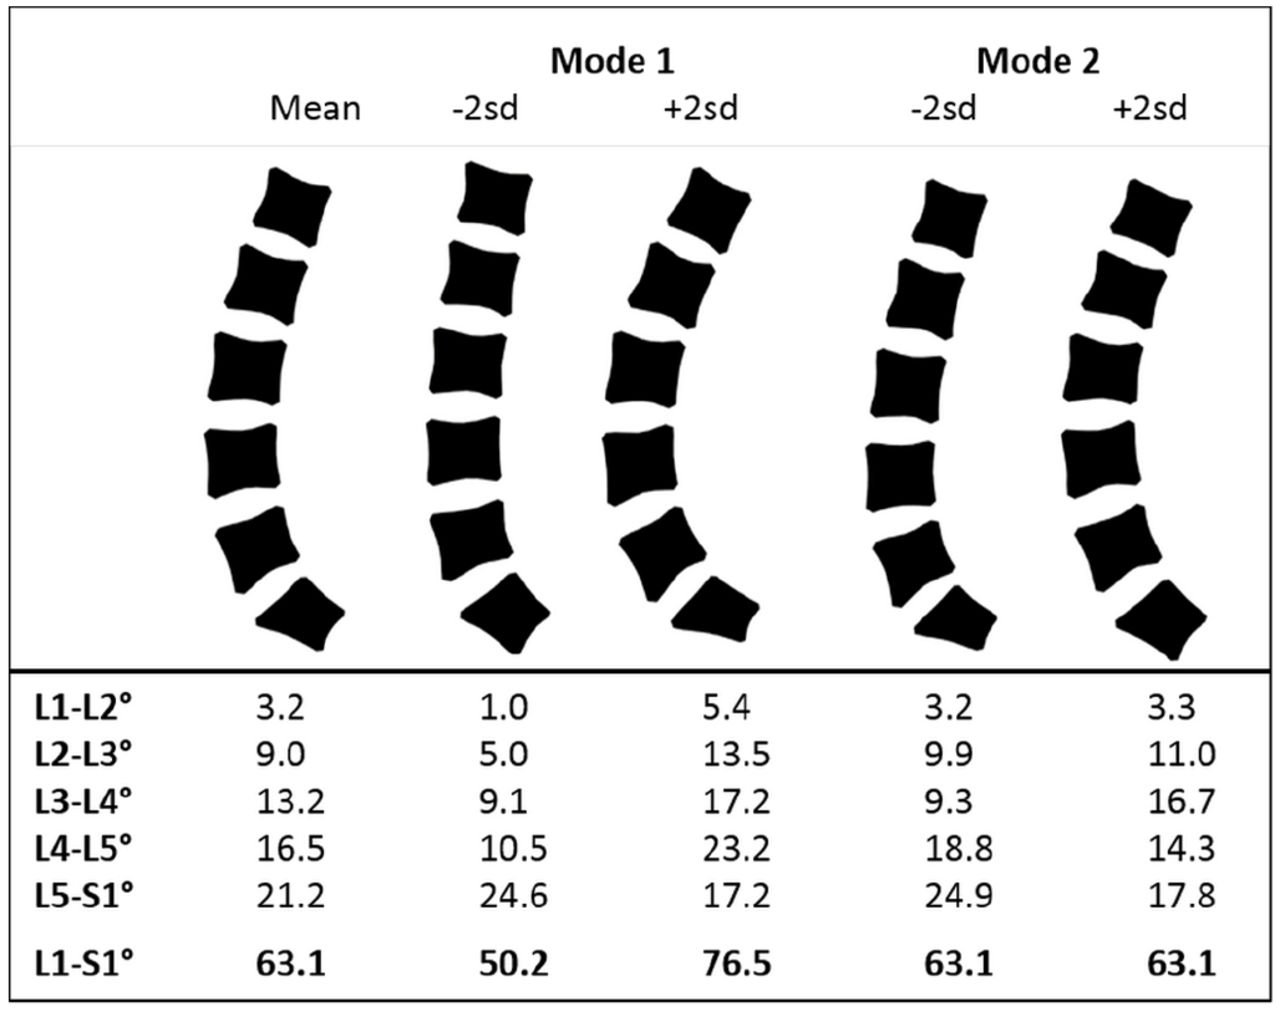 Variation In Lifting Kinematics Related To Individual Intrinsic Lumbar Curvature An